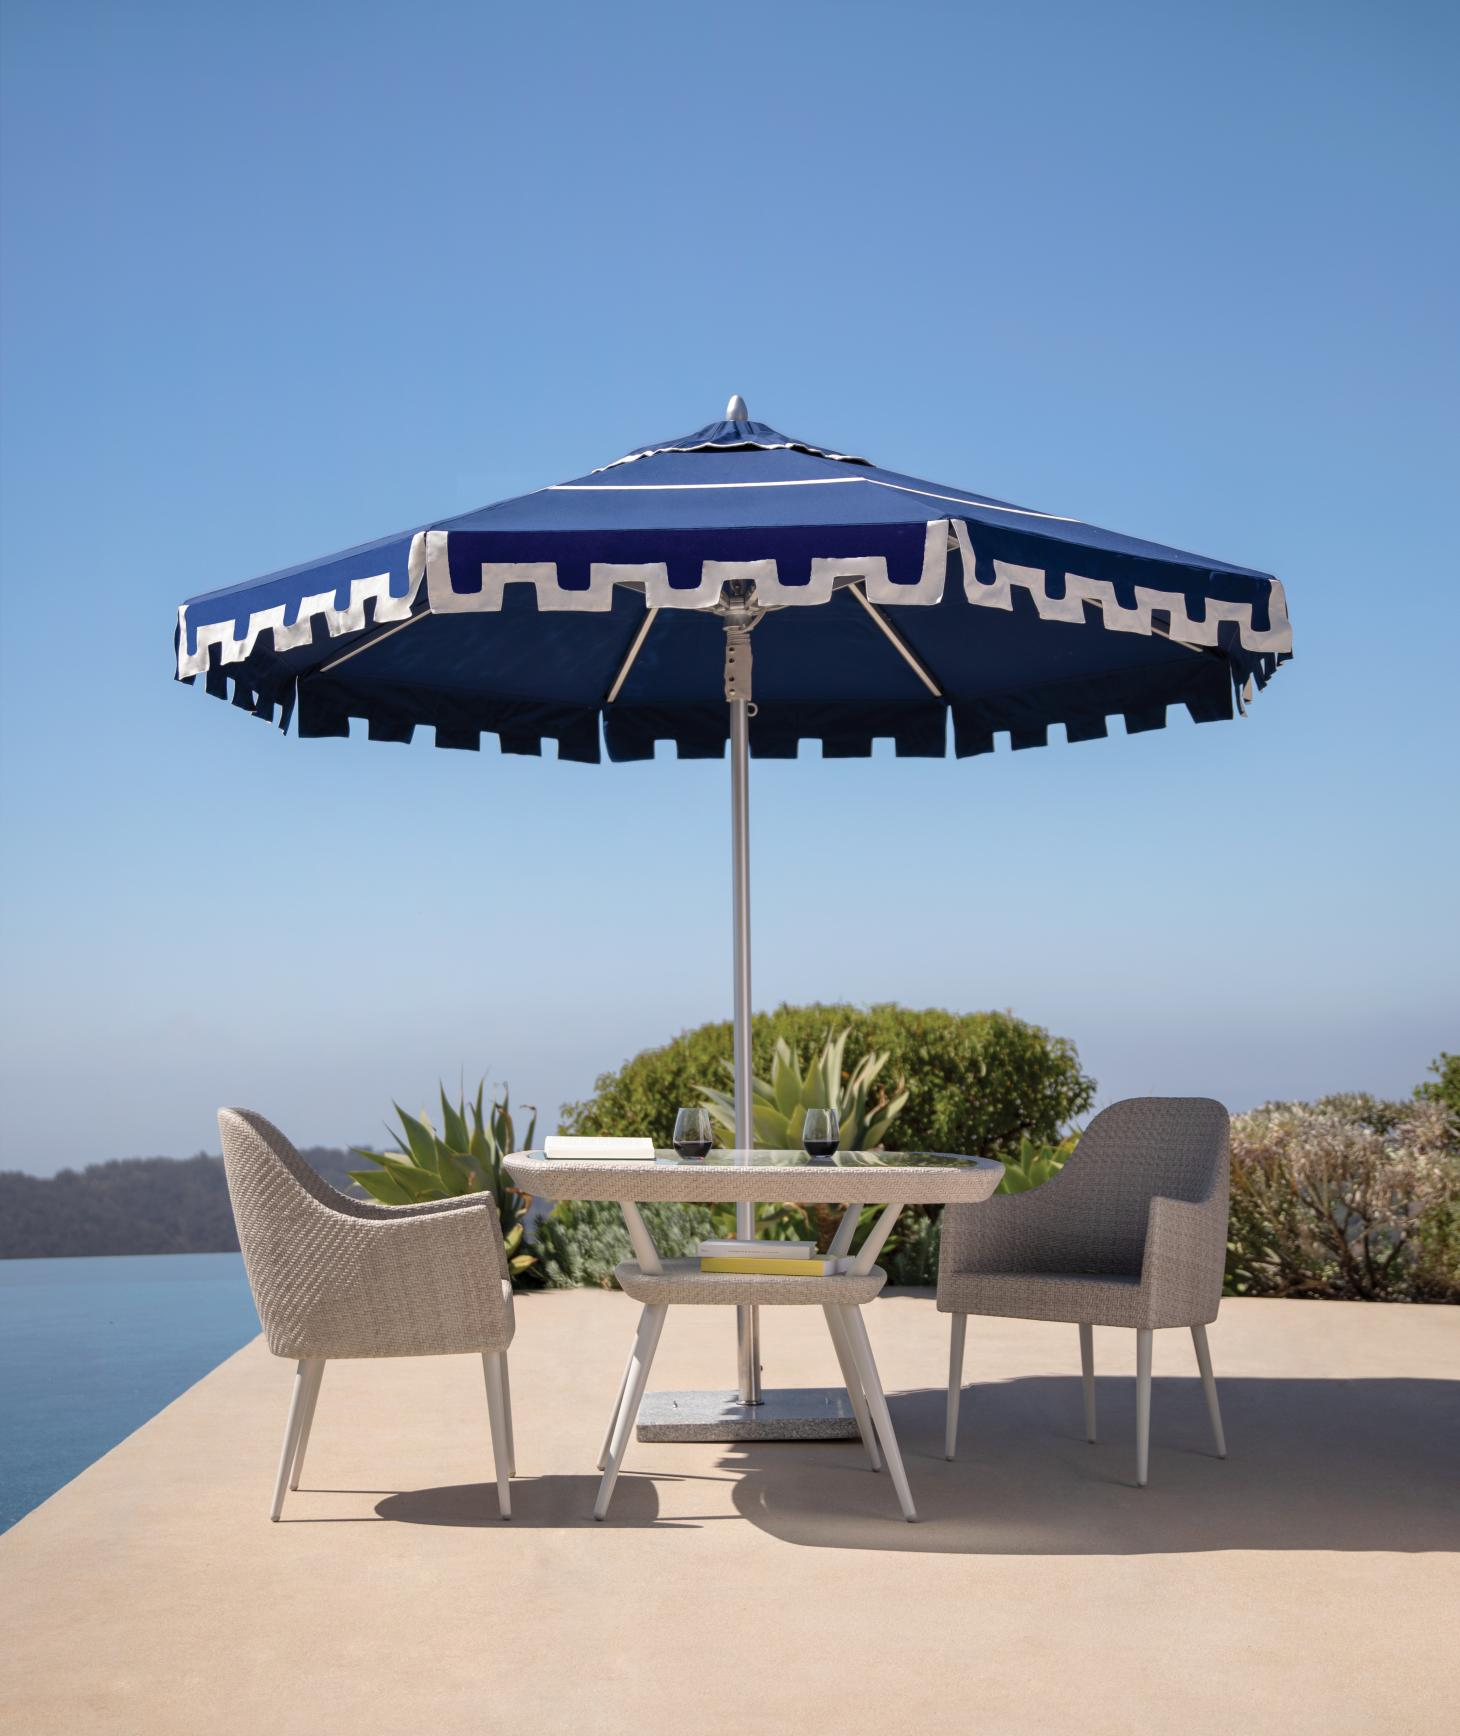 Classic parasol in blue and white on a terrace by the sea